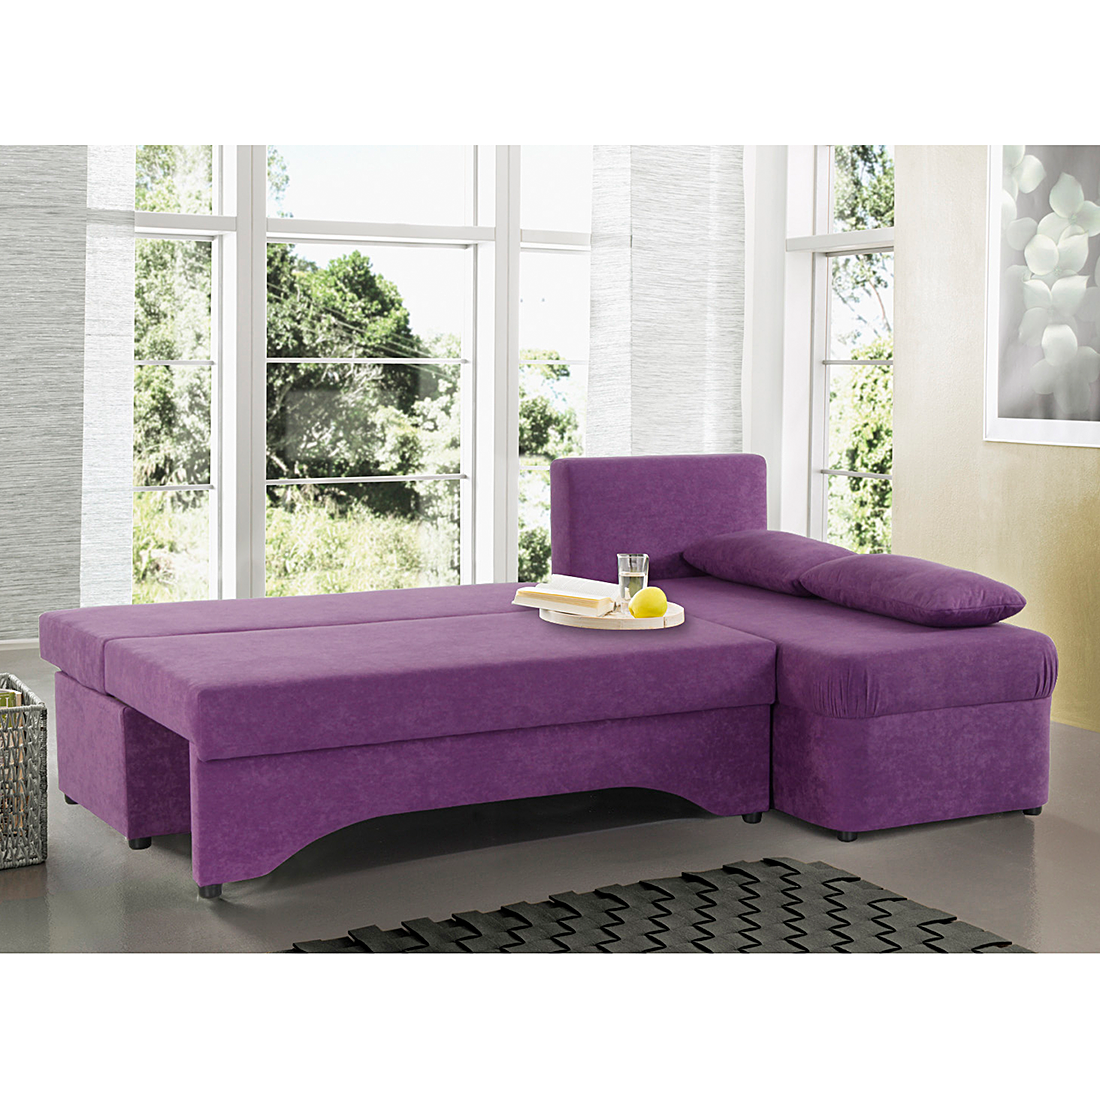 Eckcouch   schlaffunktion microfaser lila sofa couch schlafcouch ...